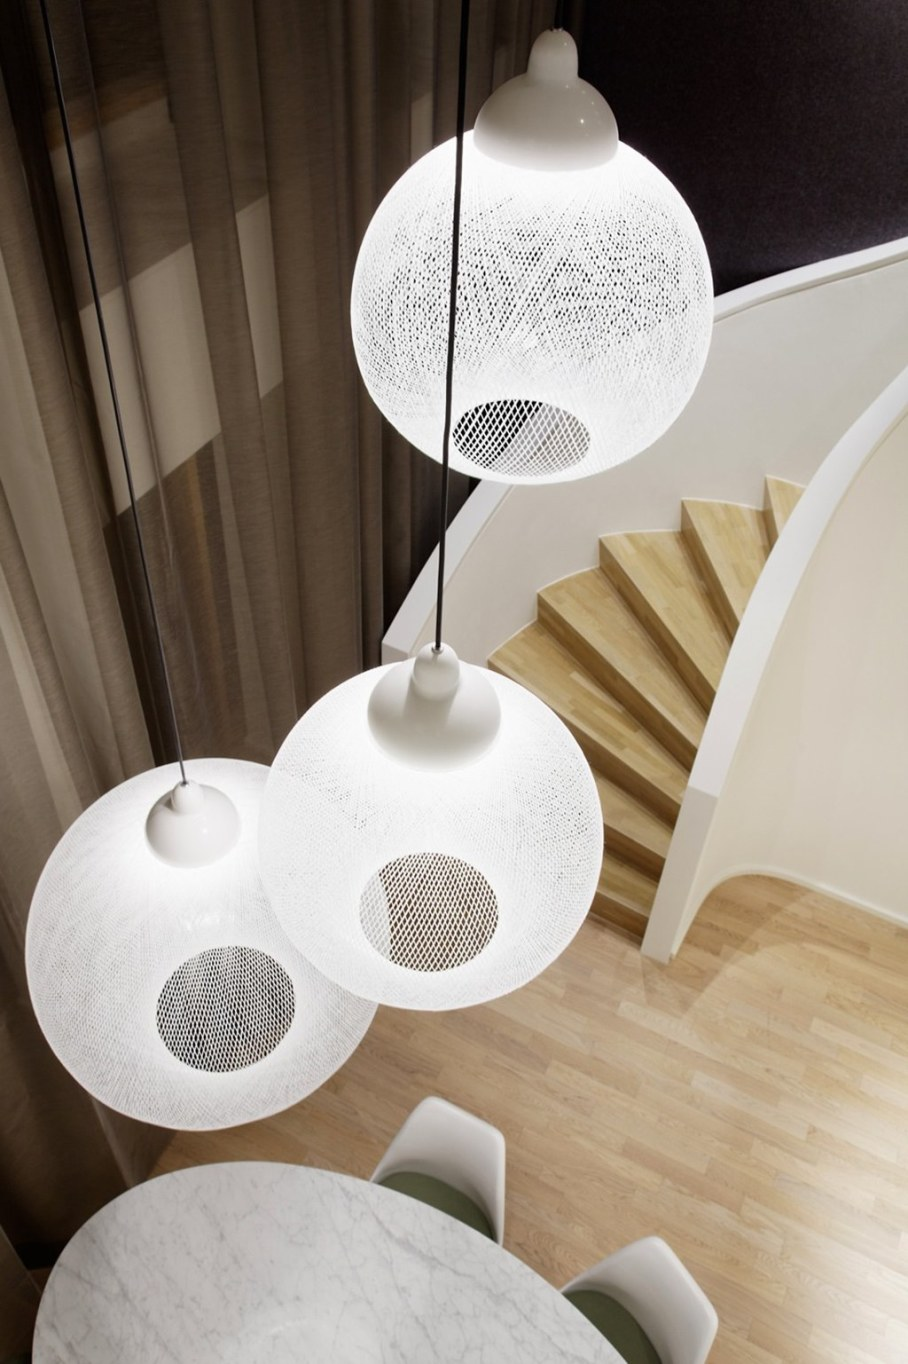 Elegant interior design - stylish floor lamp